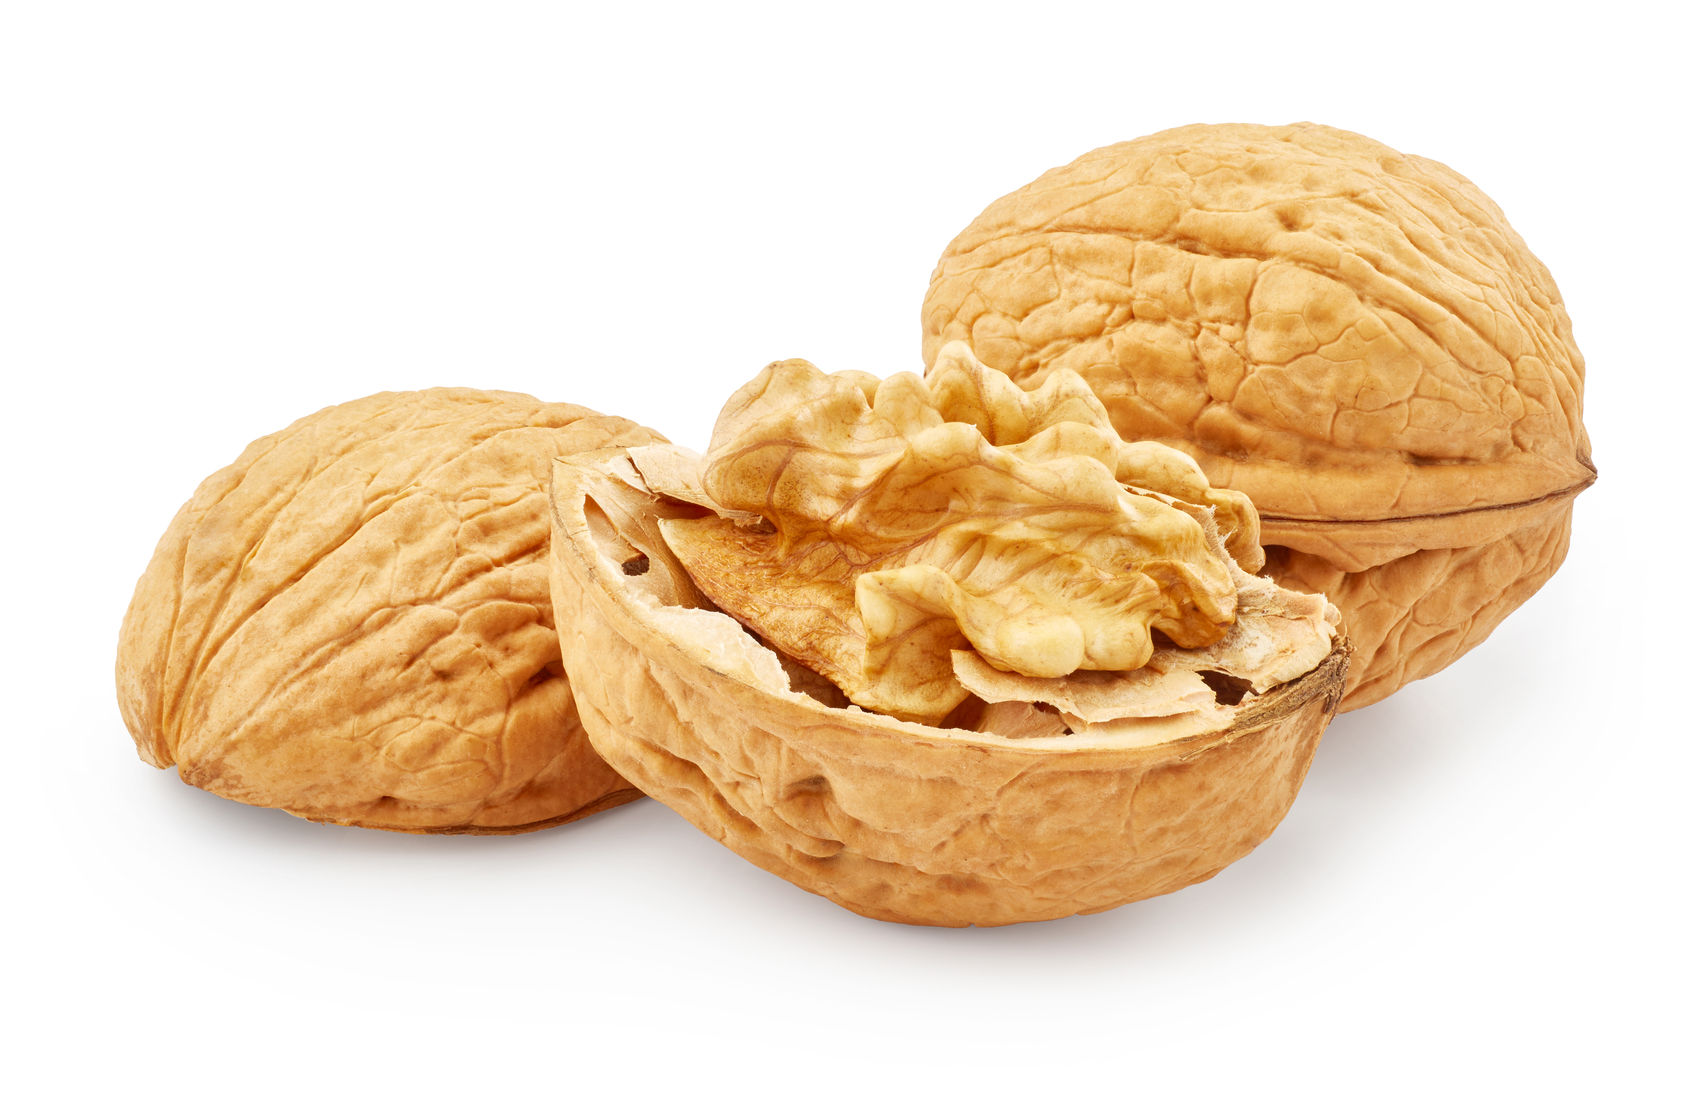 walnuts lengthen telomeres and may help you live longer